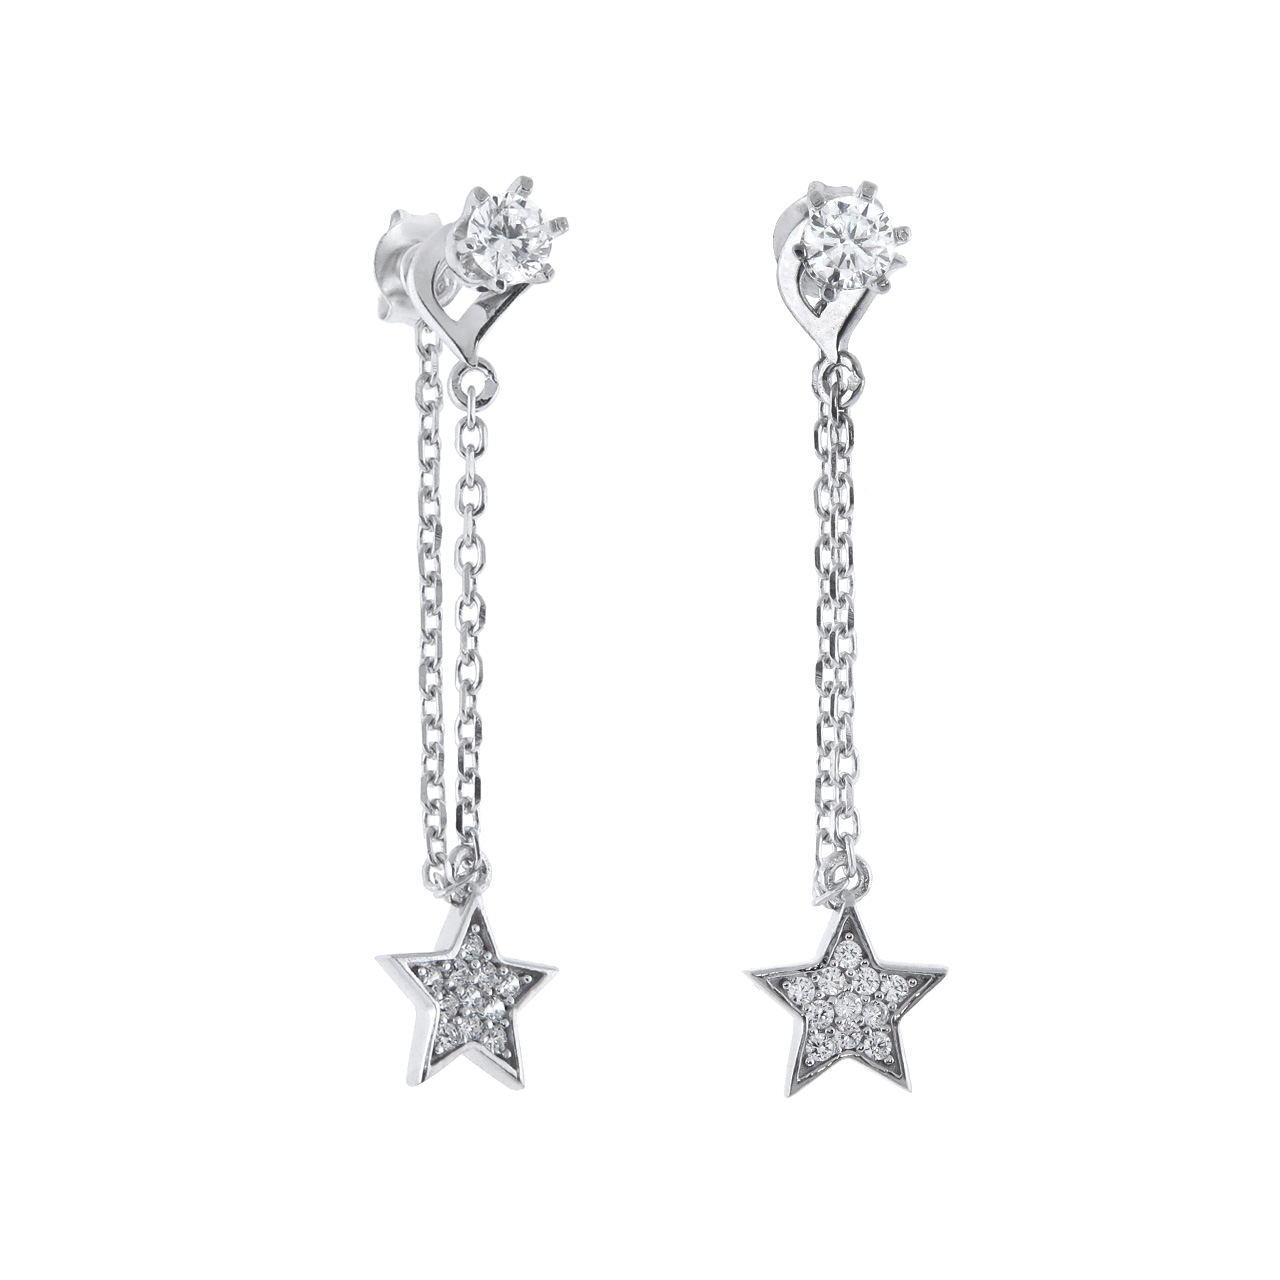 Sterling Silver Pave Stud and Star Chain Earrings